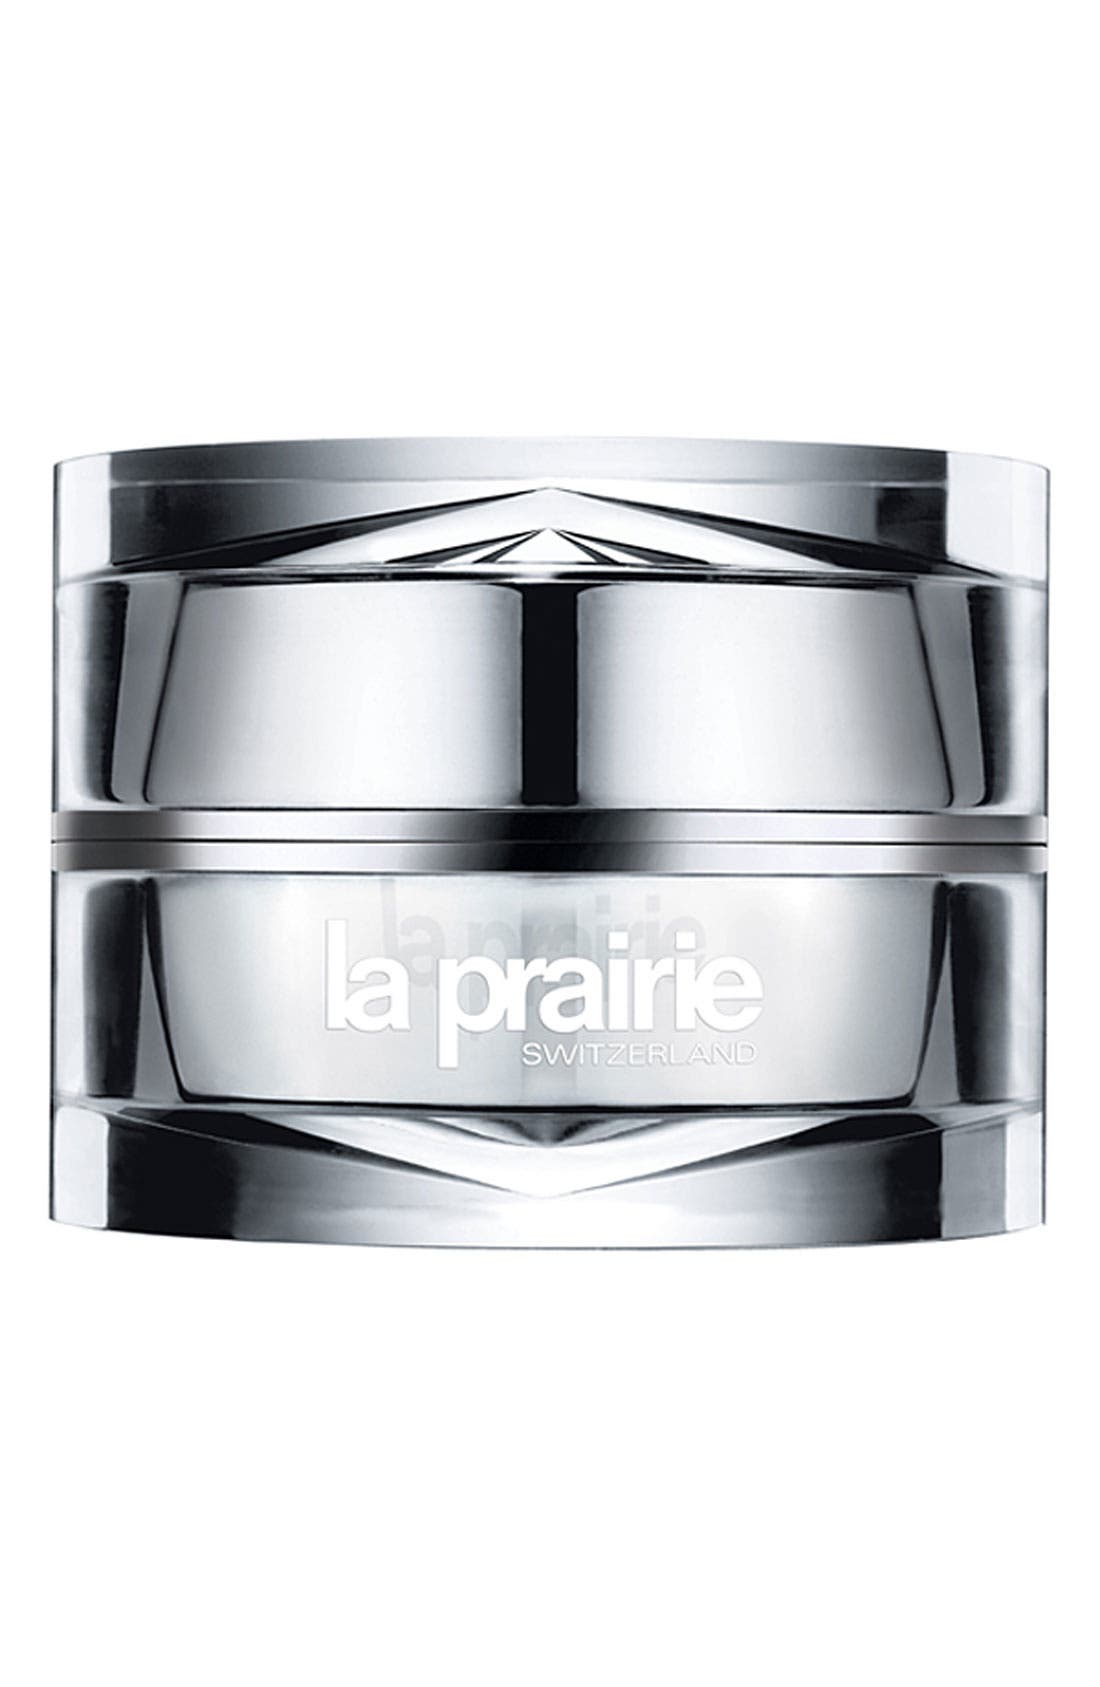 La Prairie Cellular Cream Platinum Rare (1 oz.)